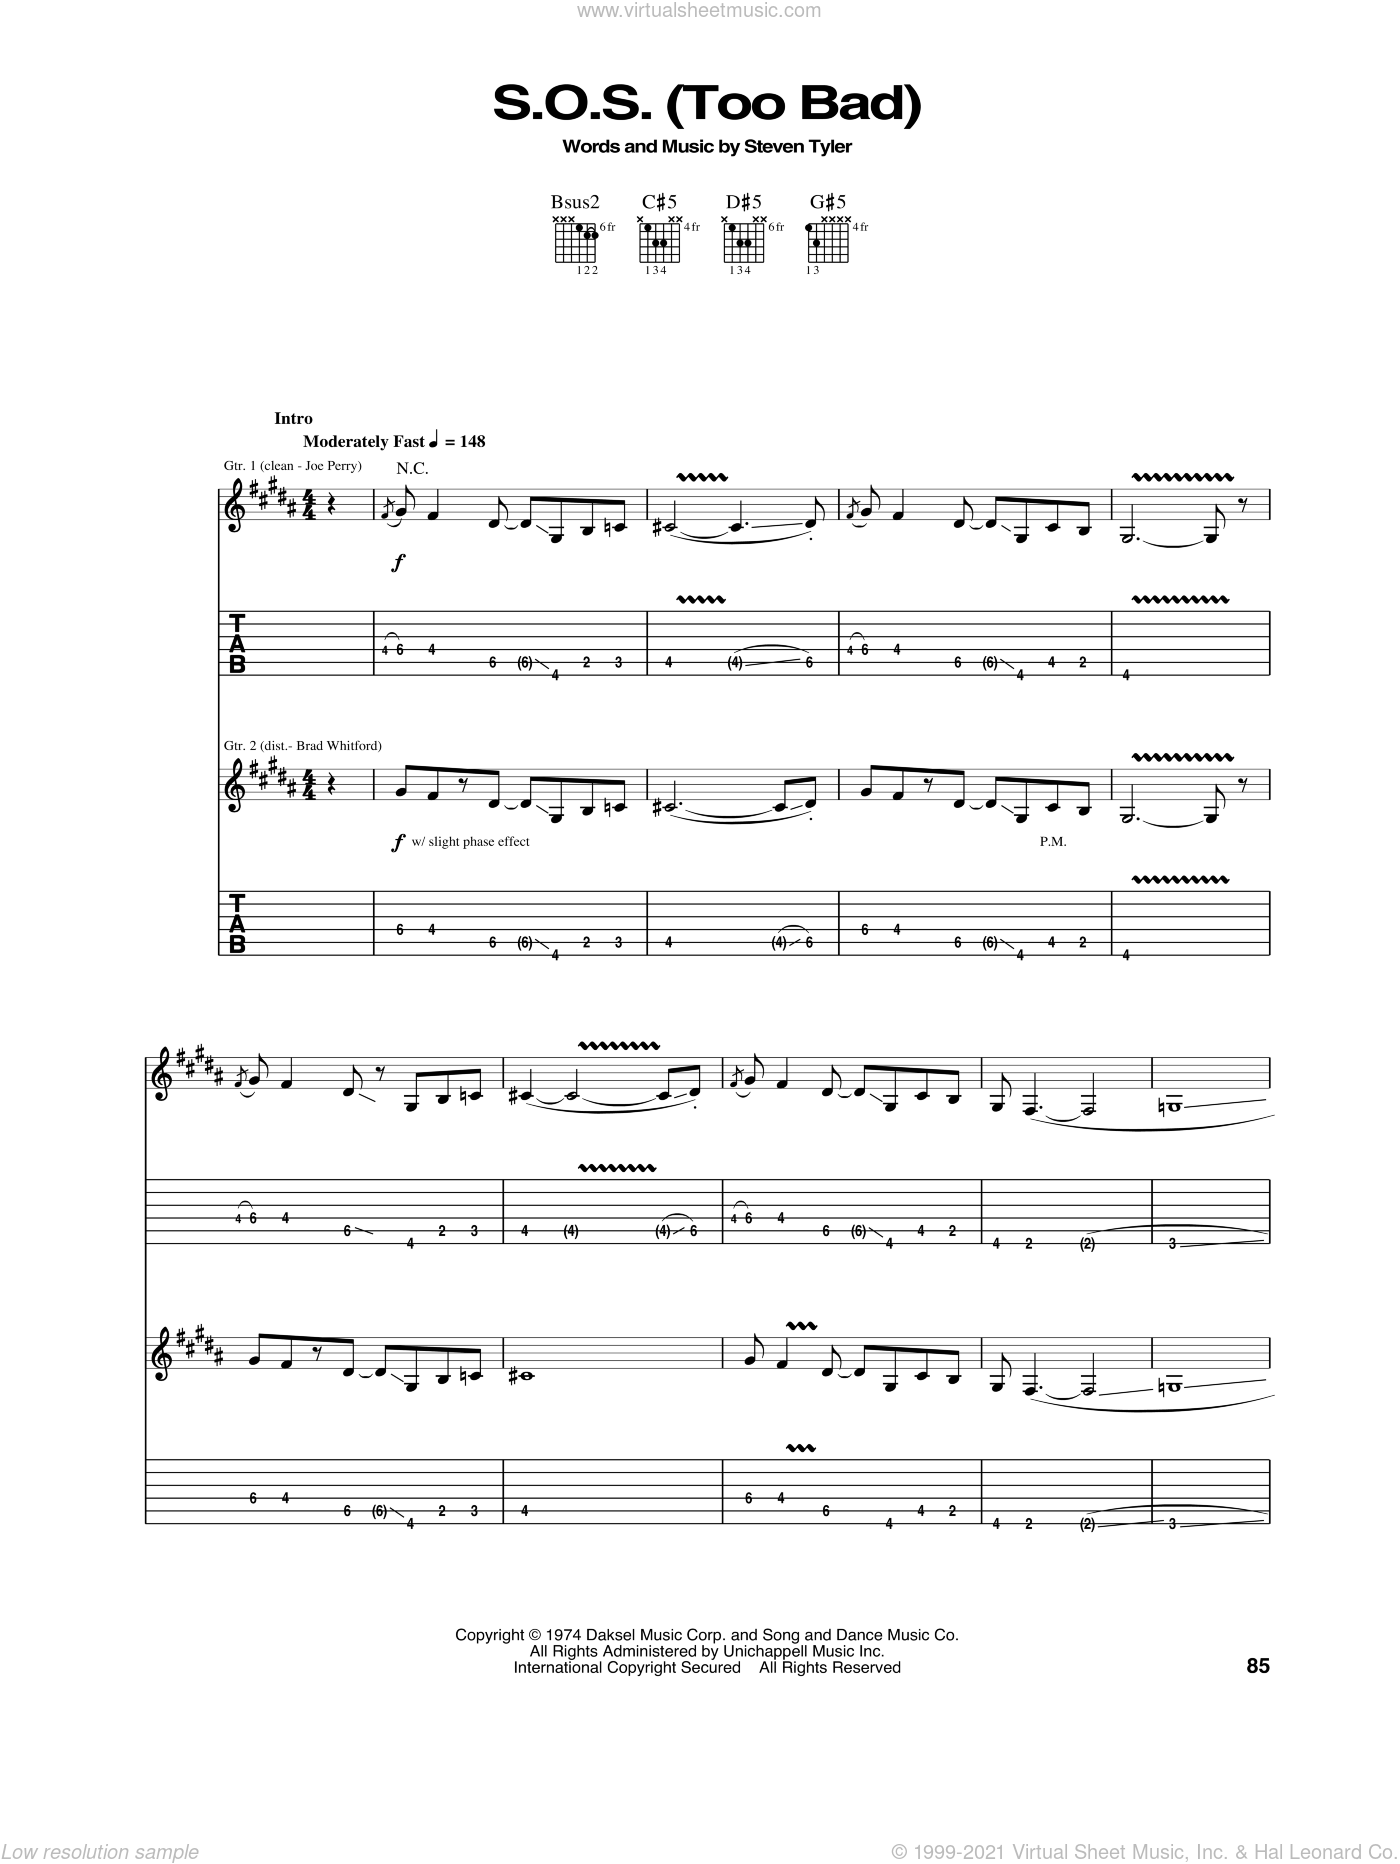 S.O.S. (Too Bad) sheet music for guitar (tablature) by Aerosmith and Steven Tyler, intermediate skill level